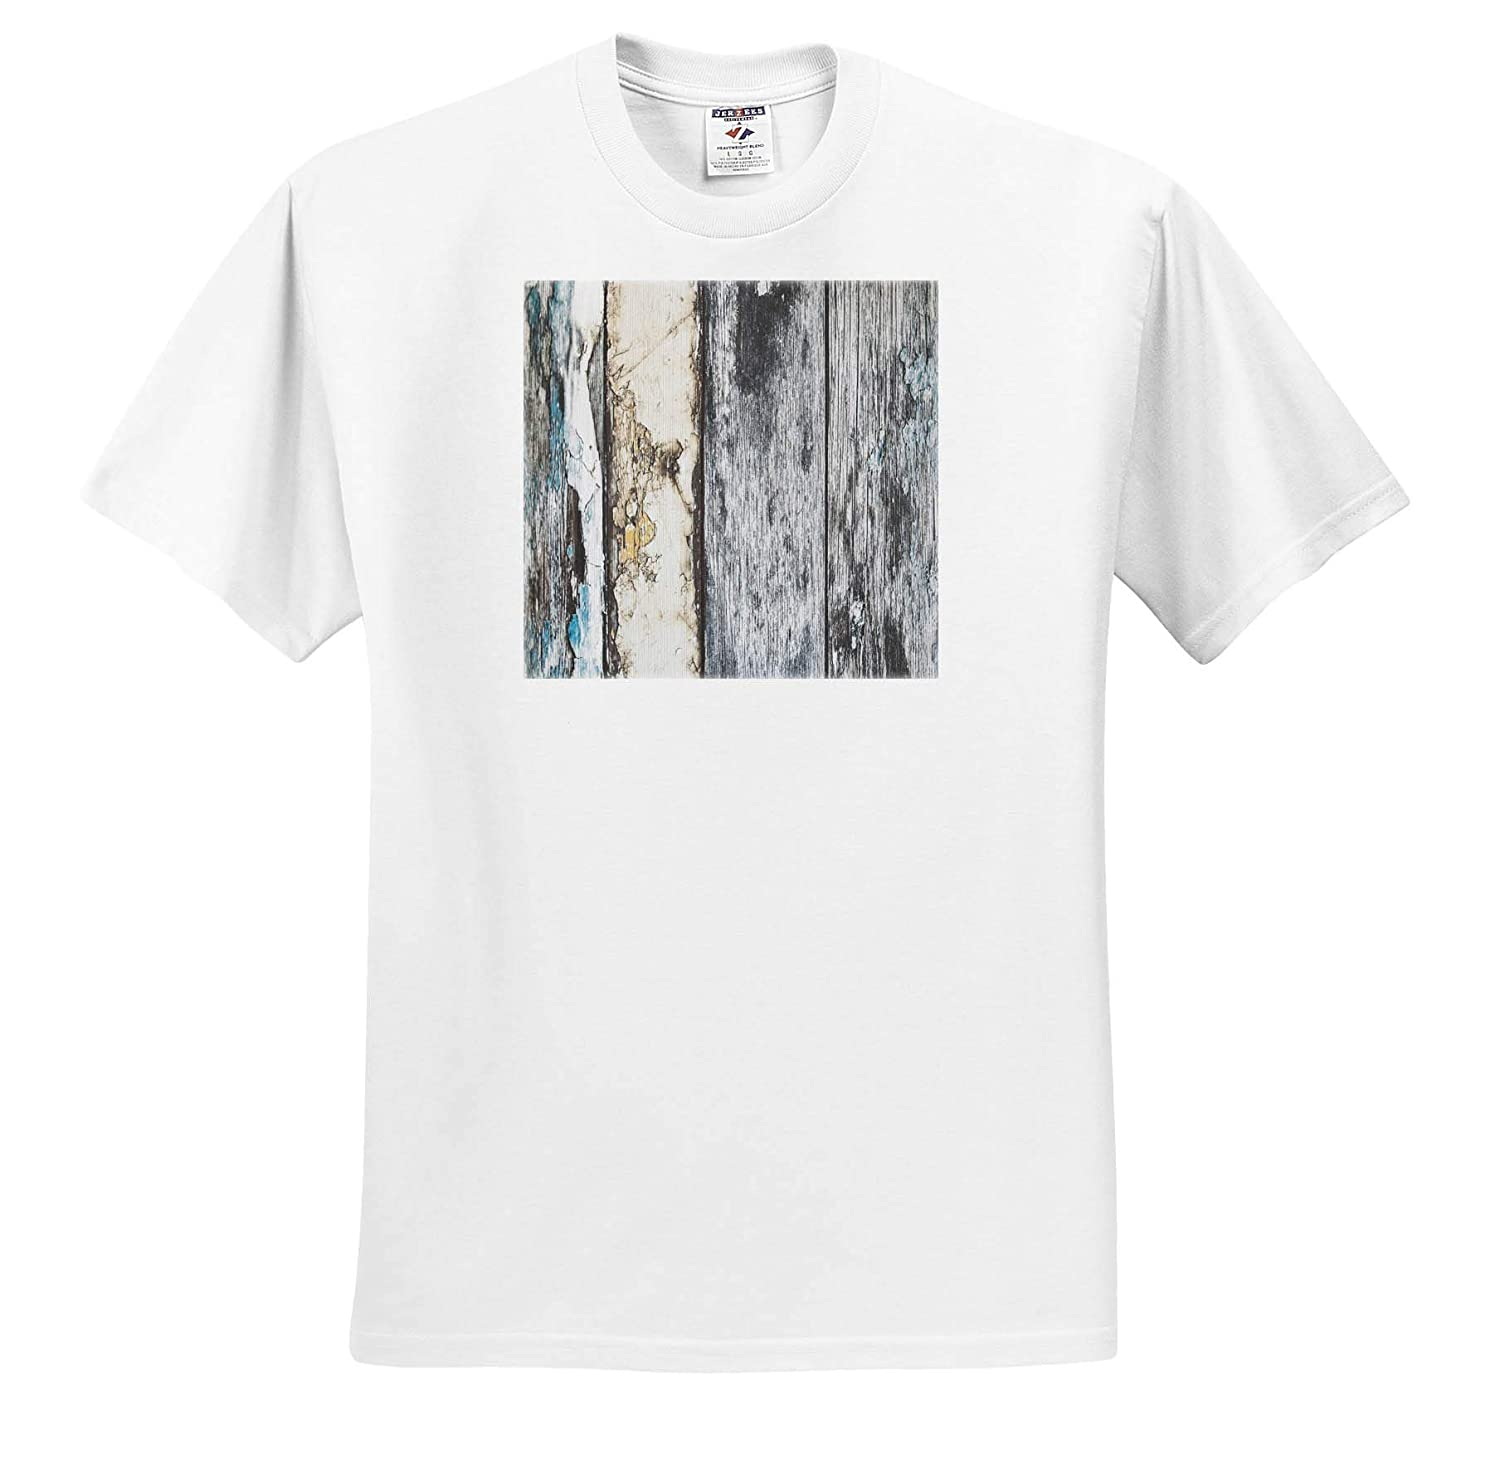 T-Shirts 3dRose Lens Art by Florene Image of Aged Rustic Gray and Aqua Wooden Fence Wooden Board Textures